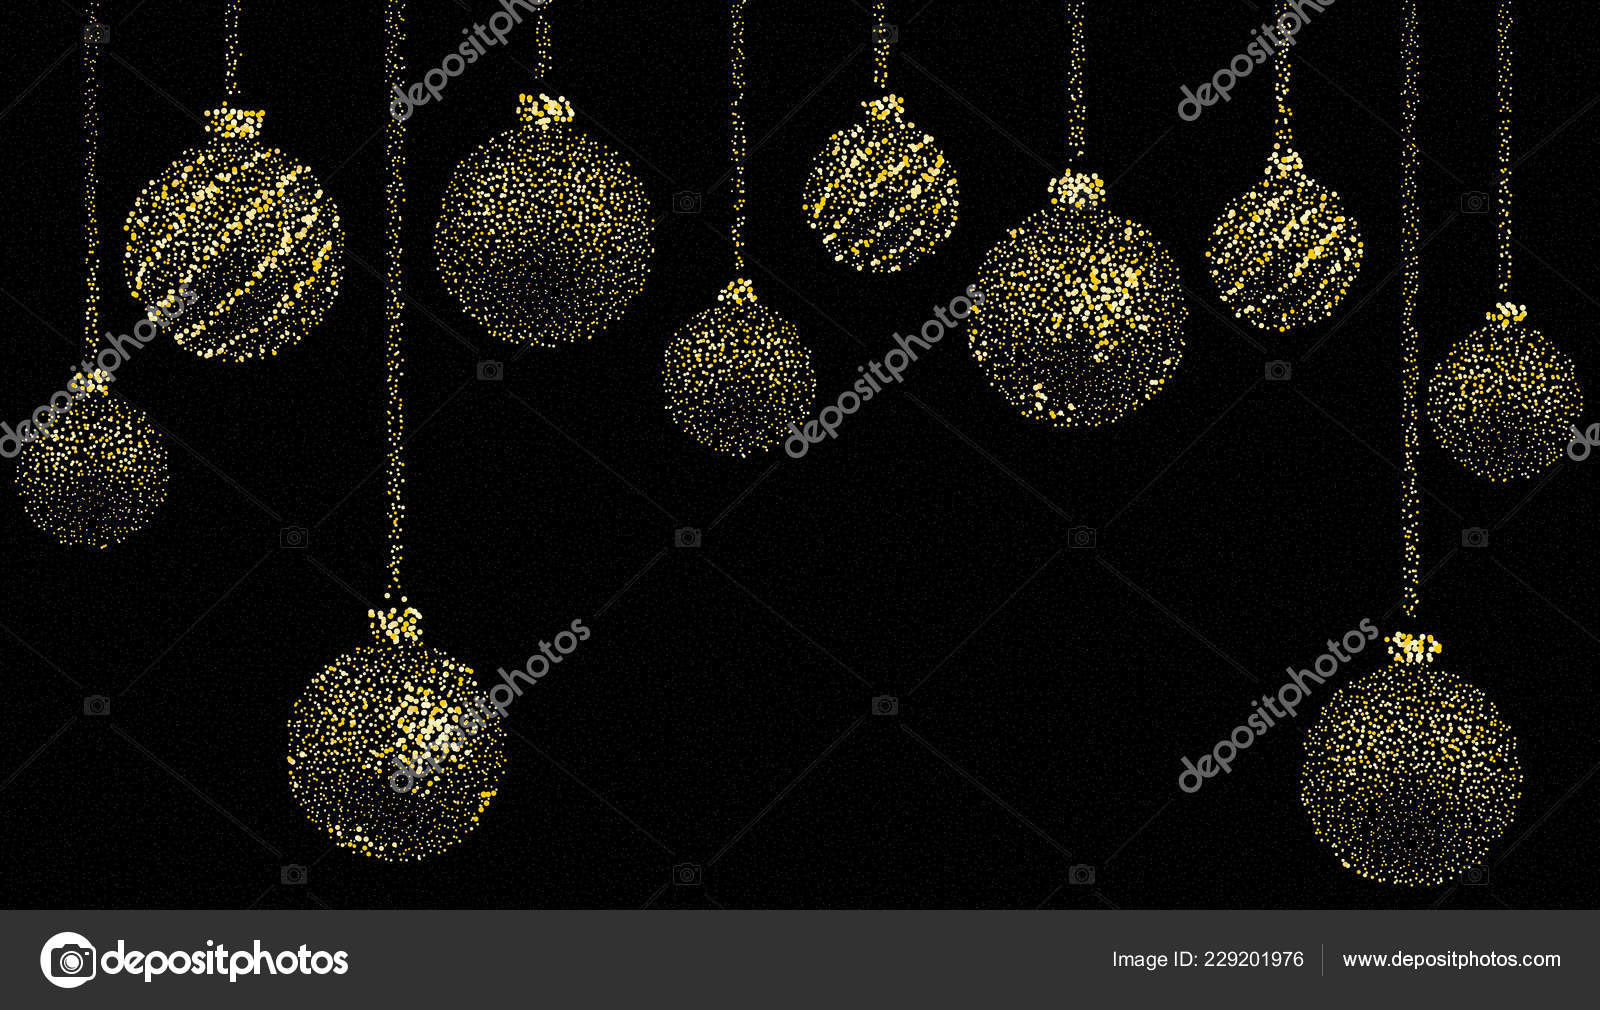 Delightful Christmas Christmas Wallpaper With Balls Formed